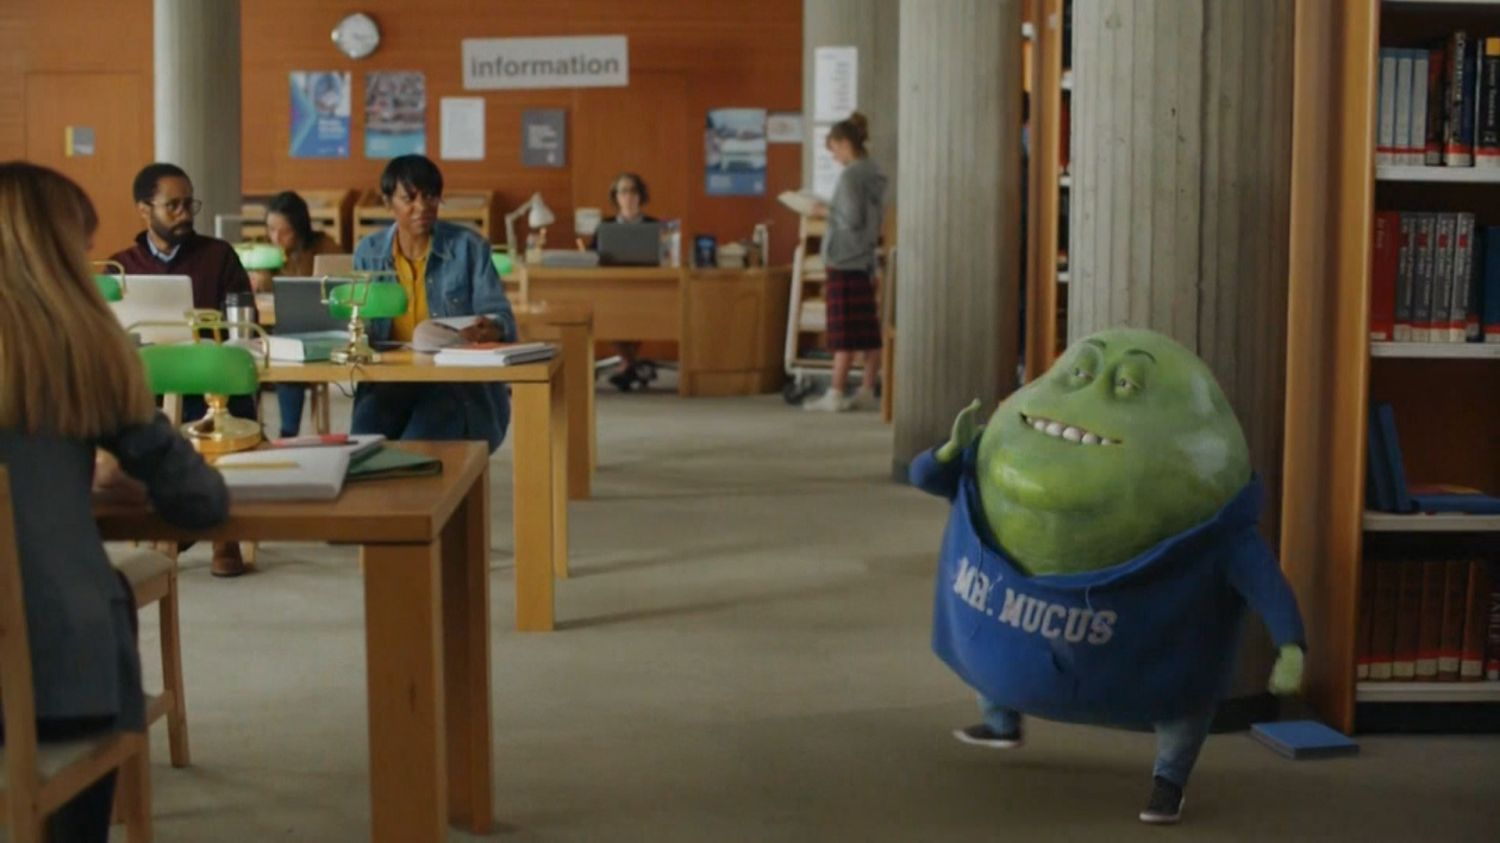 Mucinex---kw---CBS_-_September_15--2019---dtc---USA---English---TV_commercial---15_seconds.mp4